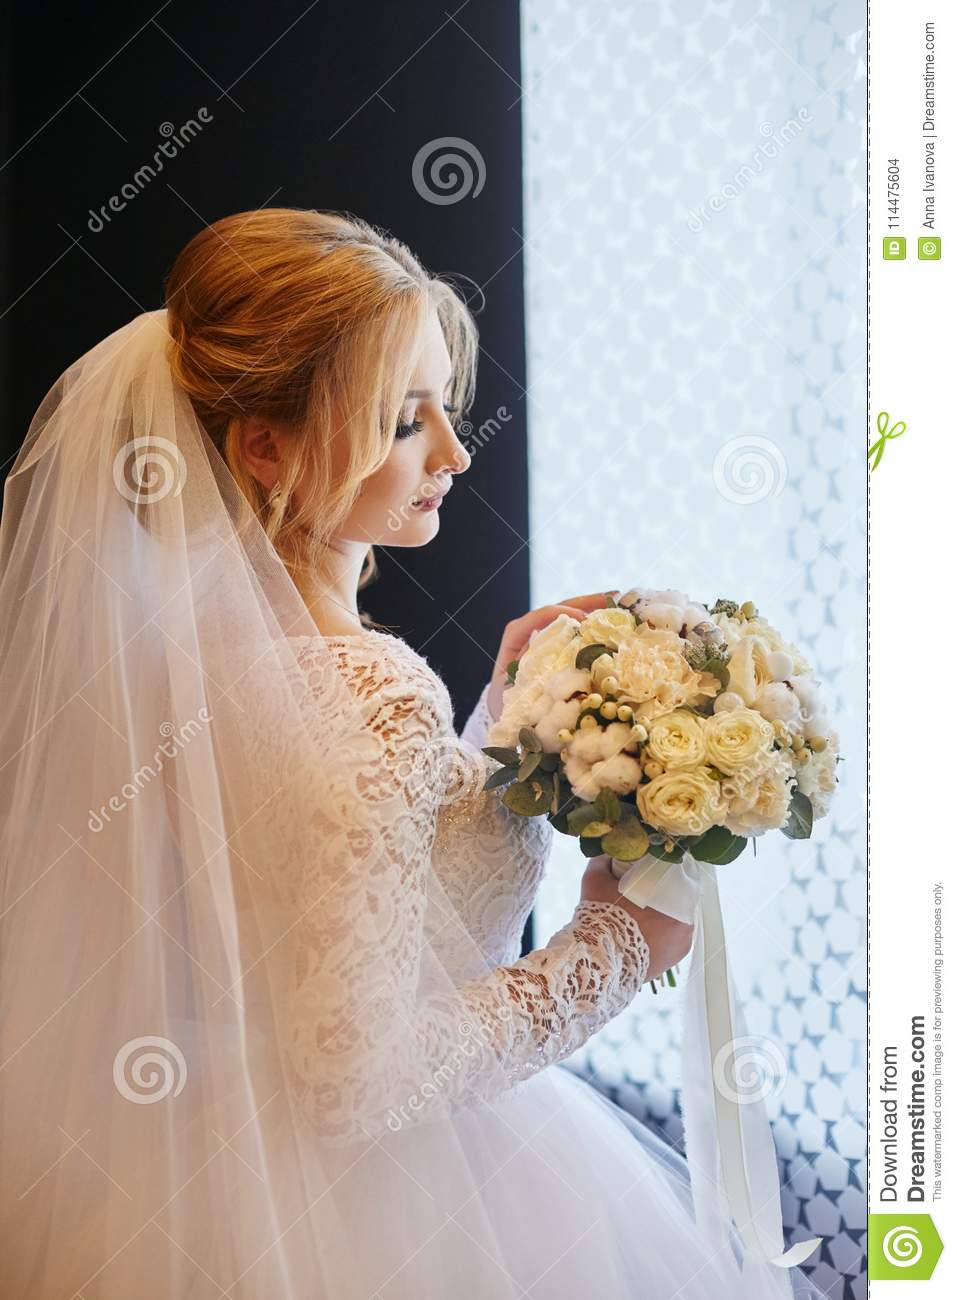 Beautiful Blonde Bride In The Morning In A White Wedding Dress W